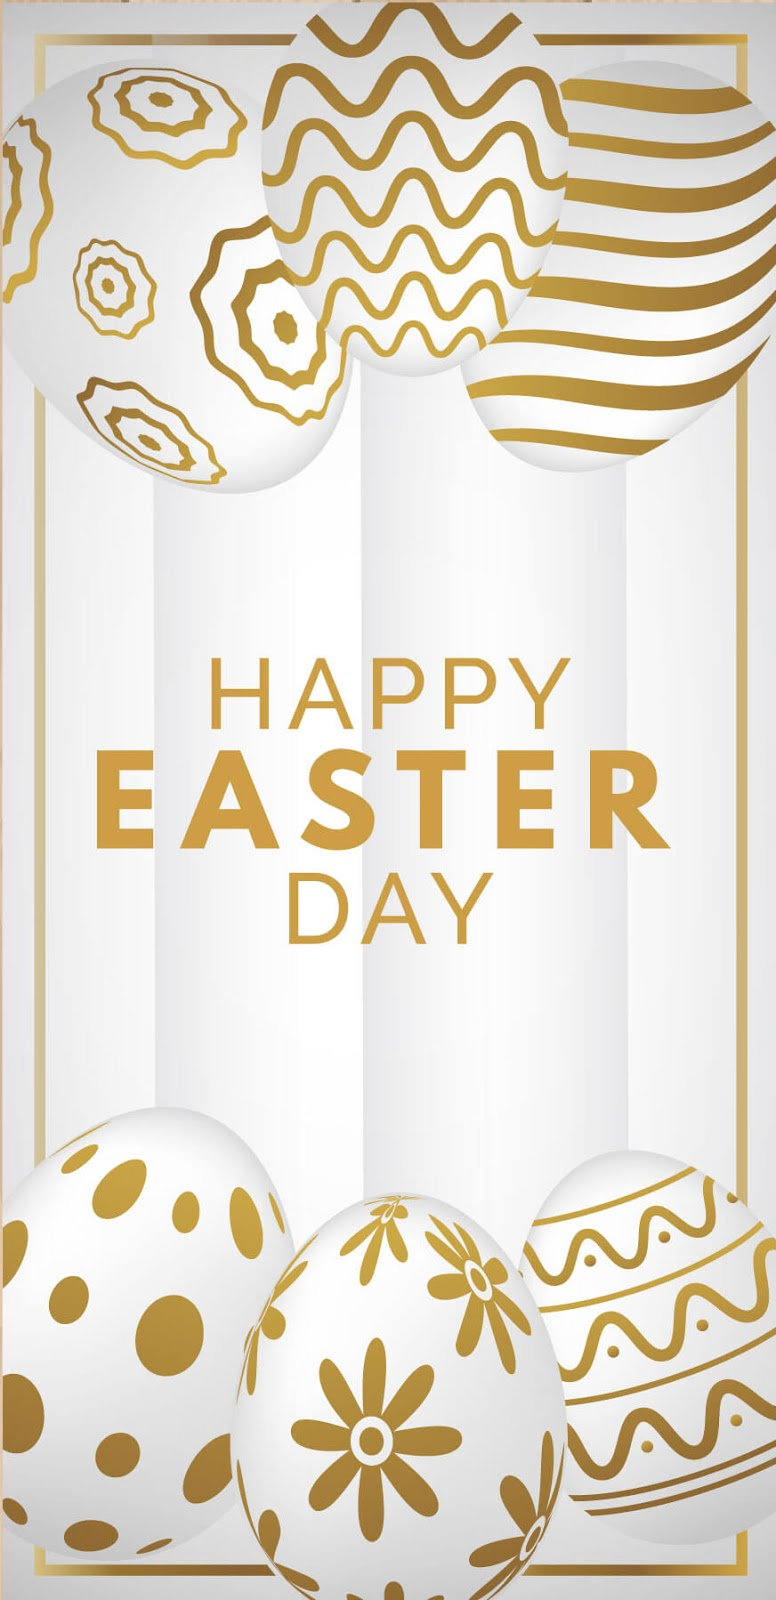 Free Easter Pics and Easter Images Download